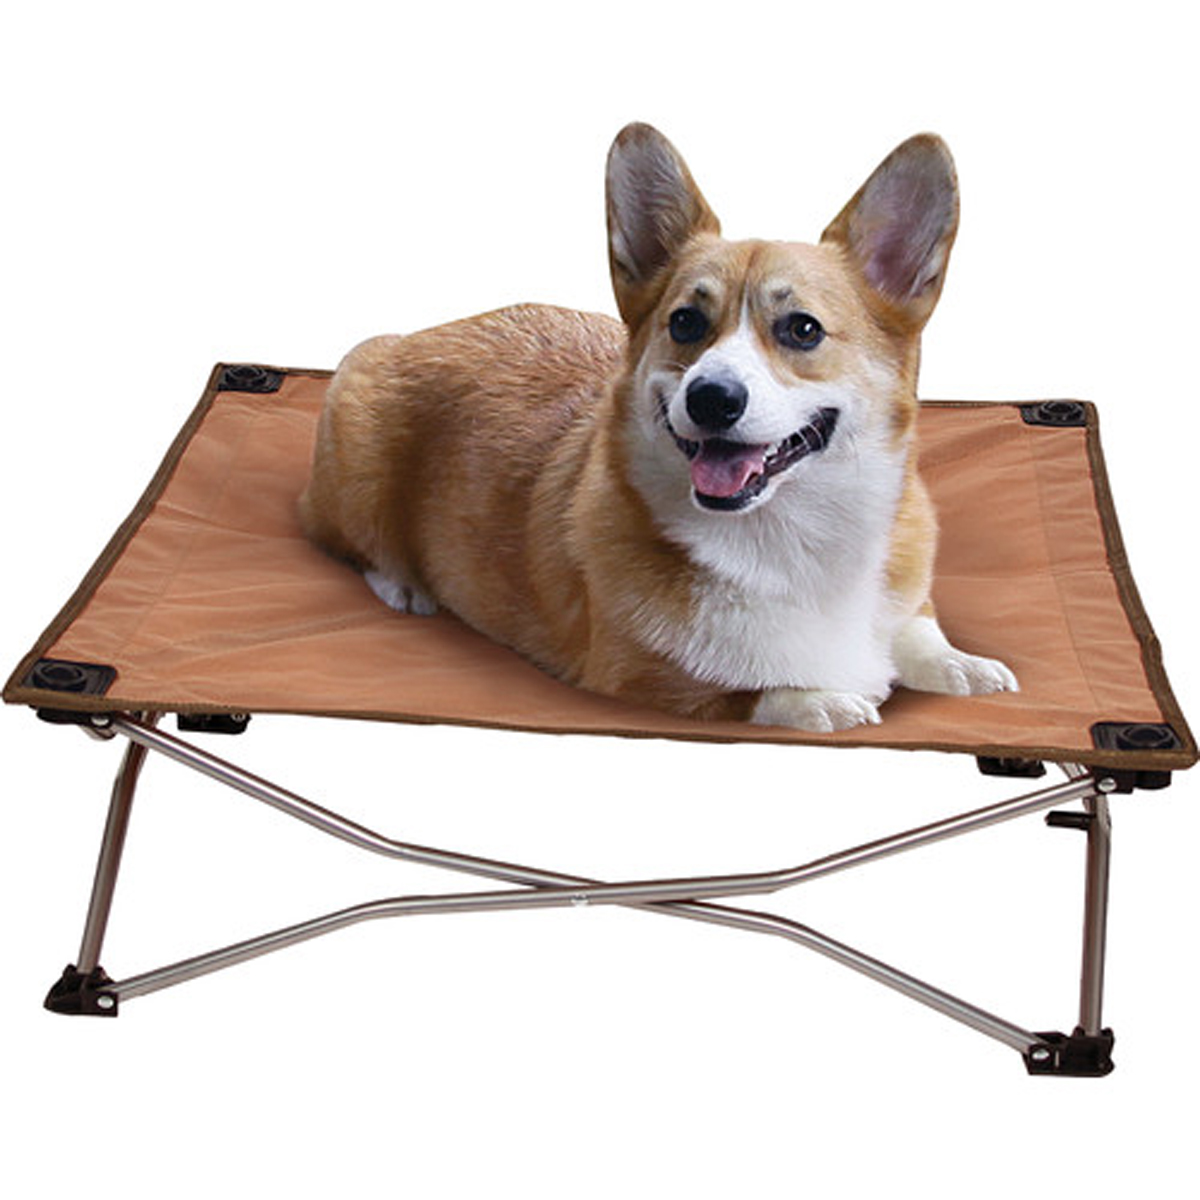 Carlson Portable Pup Travel Dog Bed   Tan